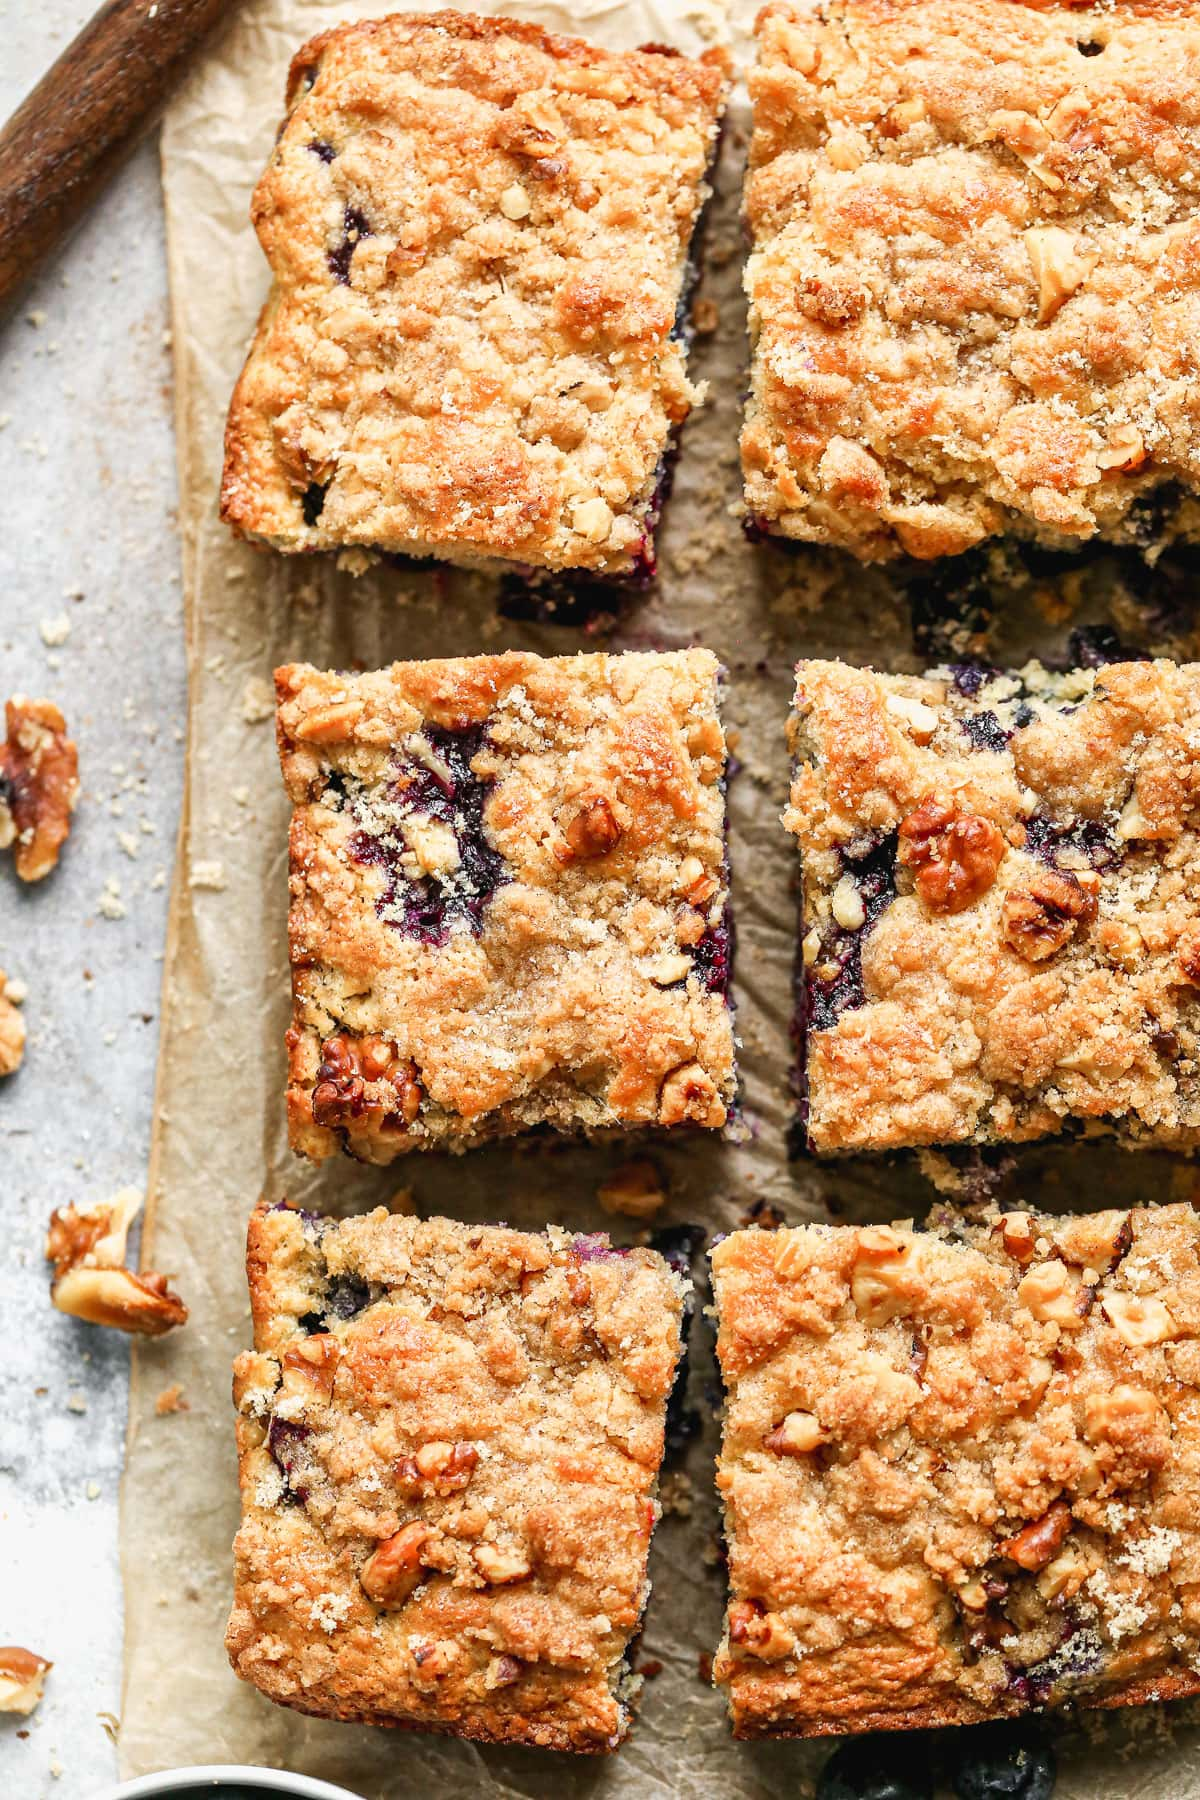 blueberry buckle with streusel topping